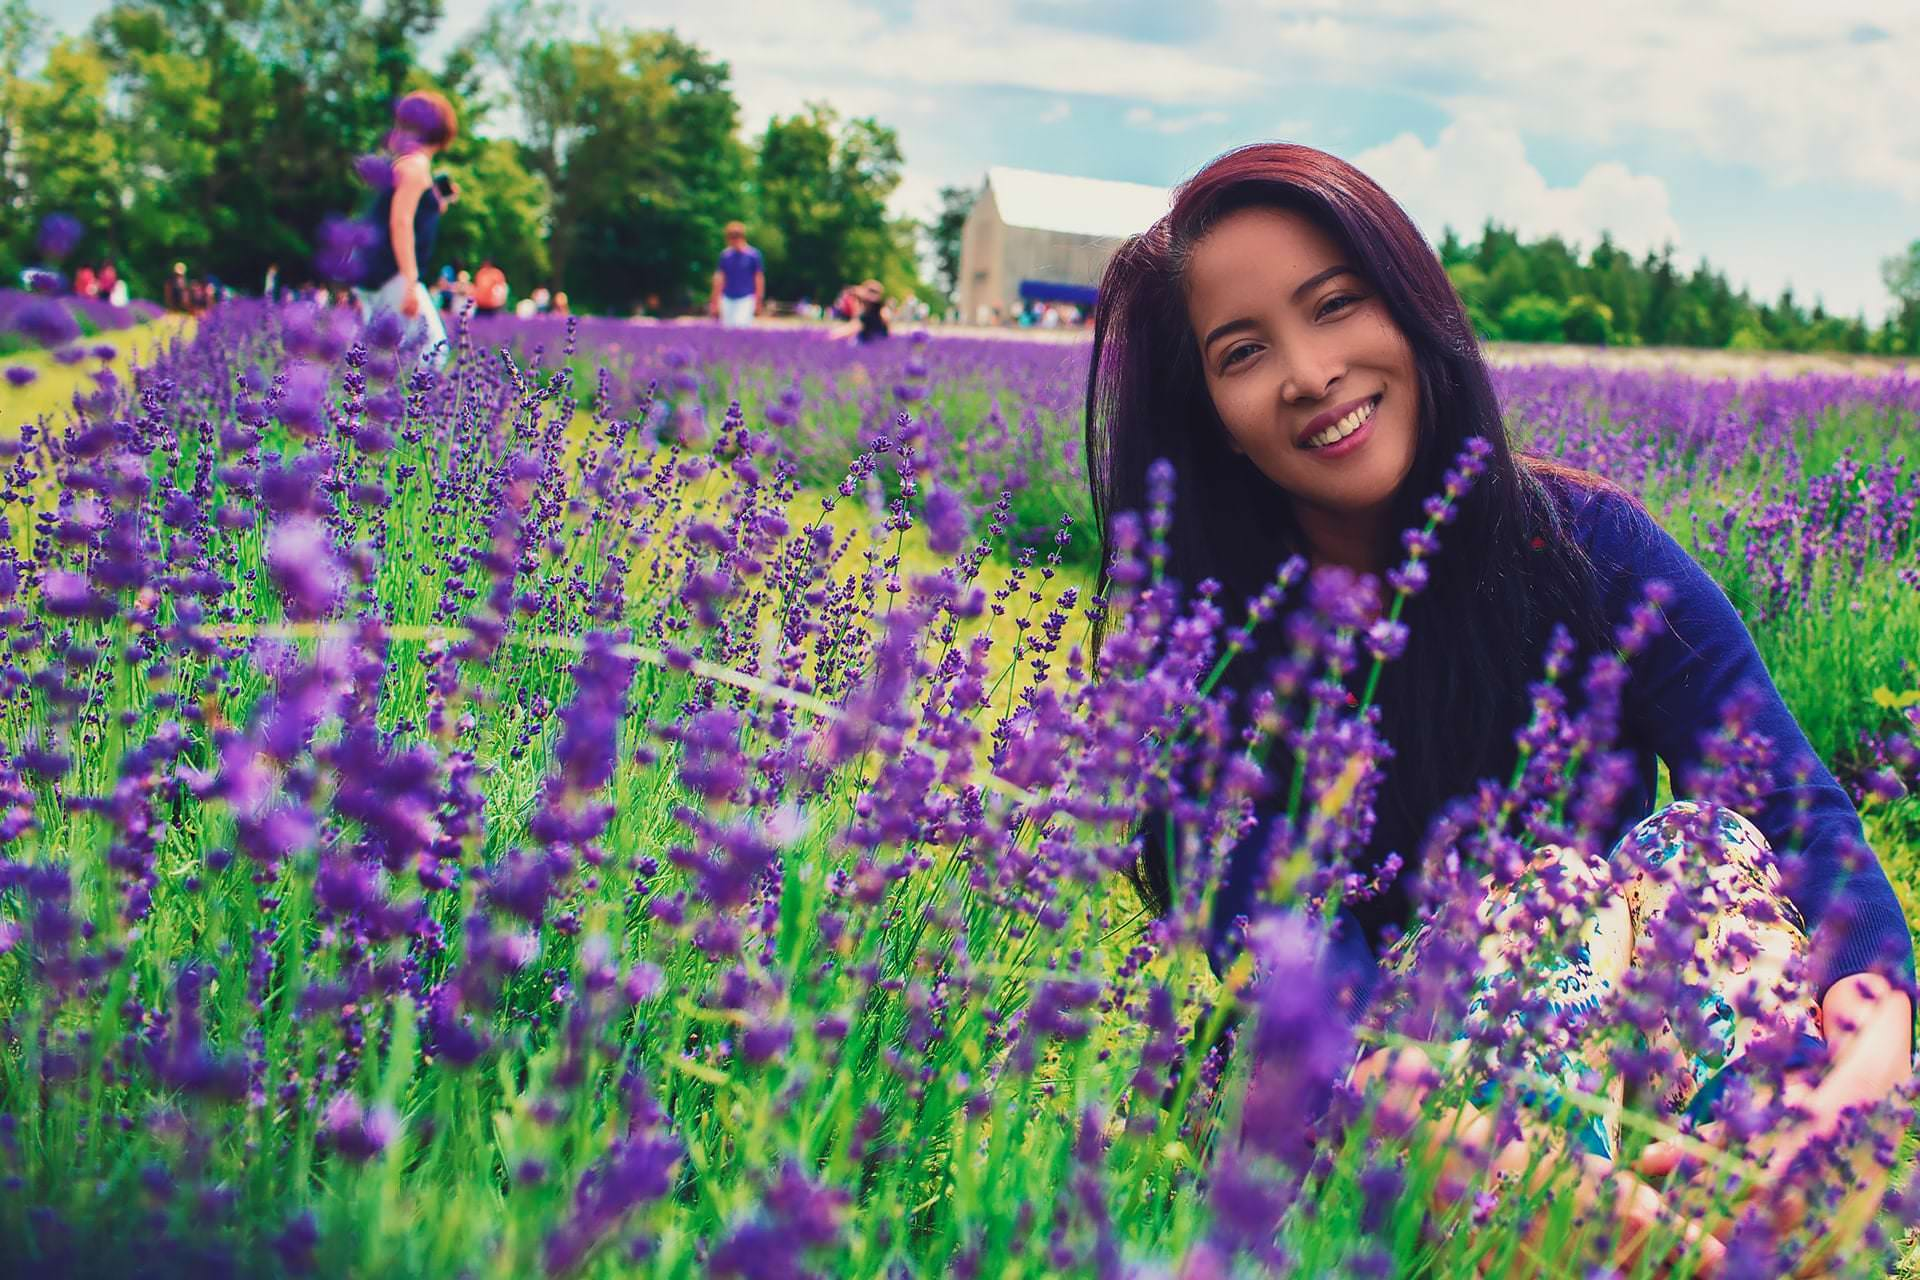 Yuen Mi at Terre Bleu Lavender Farm enjoying the Lavender Festival in Ontairo